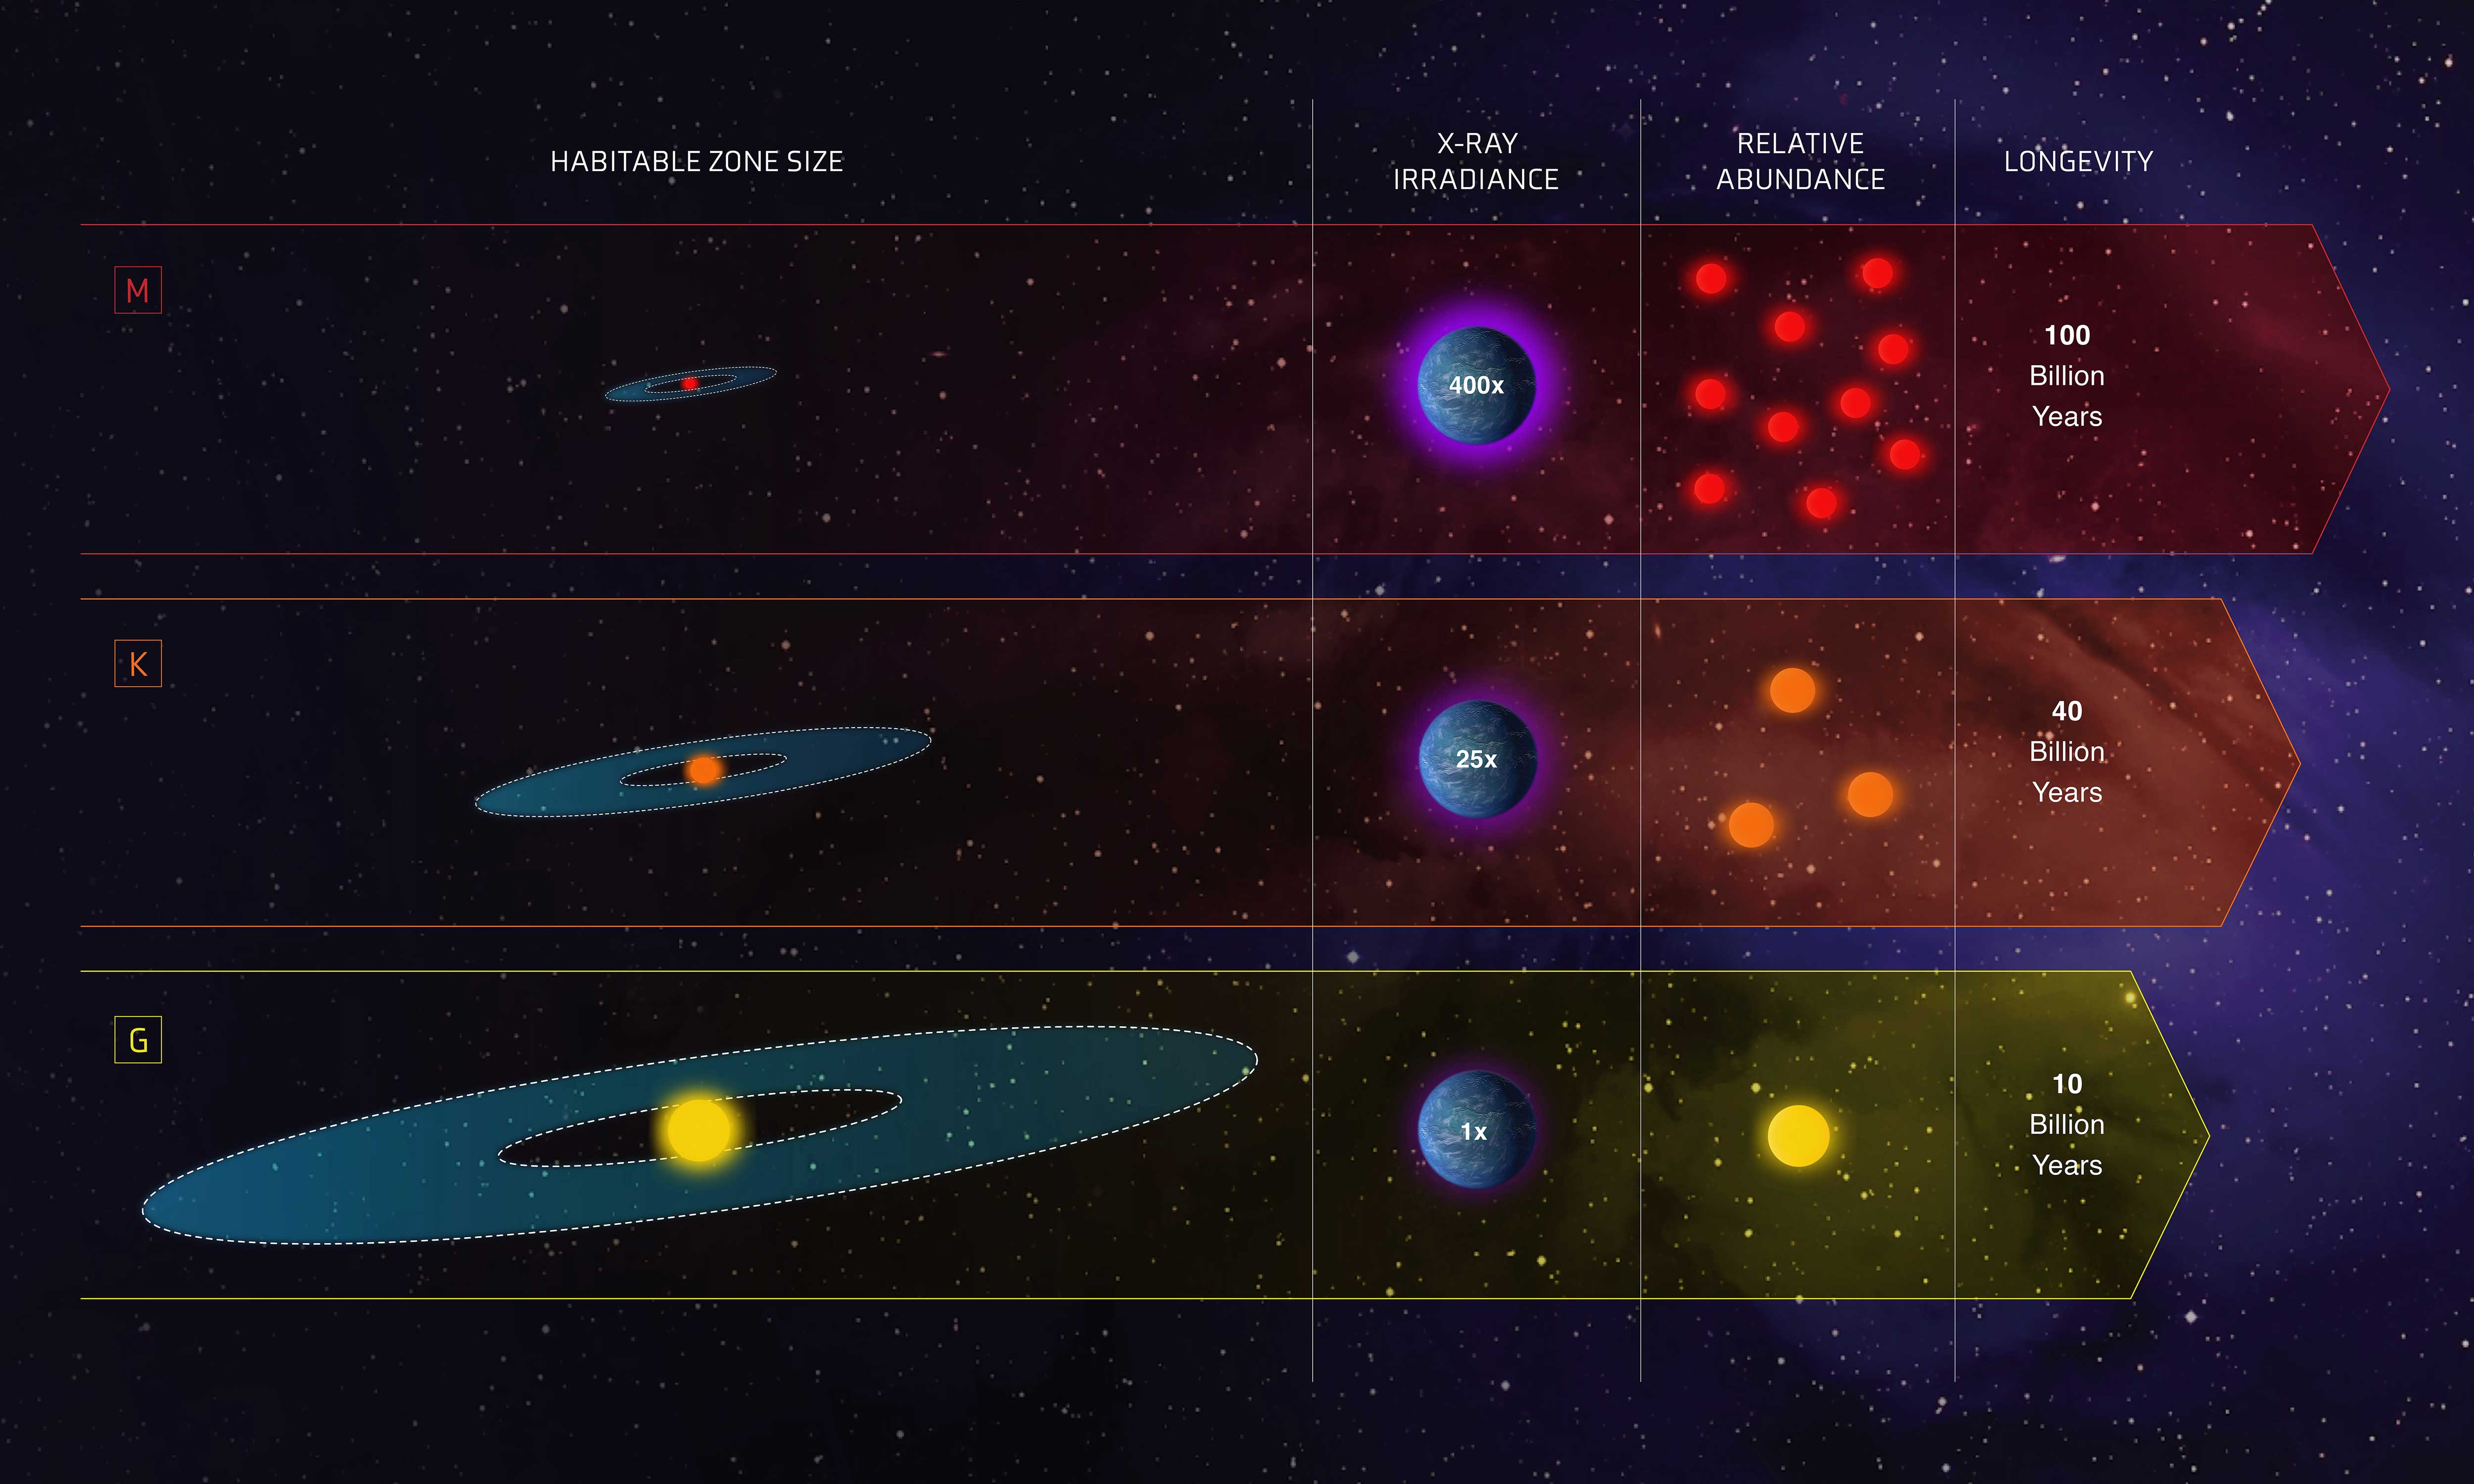 An infographic showing the habitable zones around three different star types. It's a small region close to M-type stars, the most prevalent in our galaxy. It's a bigger zone around K-type stars and the biggest habitable zone is around G-type stars, like our sun, but the star's life is 10 billion years, compared with 100 billion years for the prevalent M dwarfs.